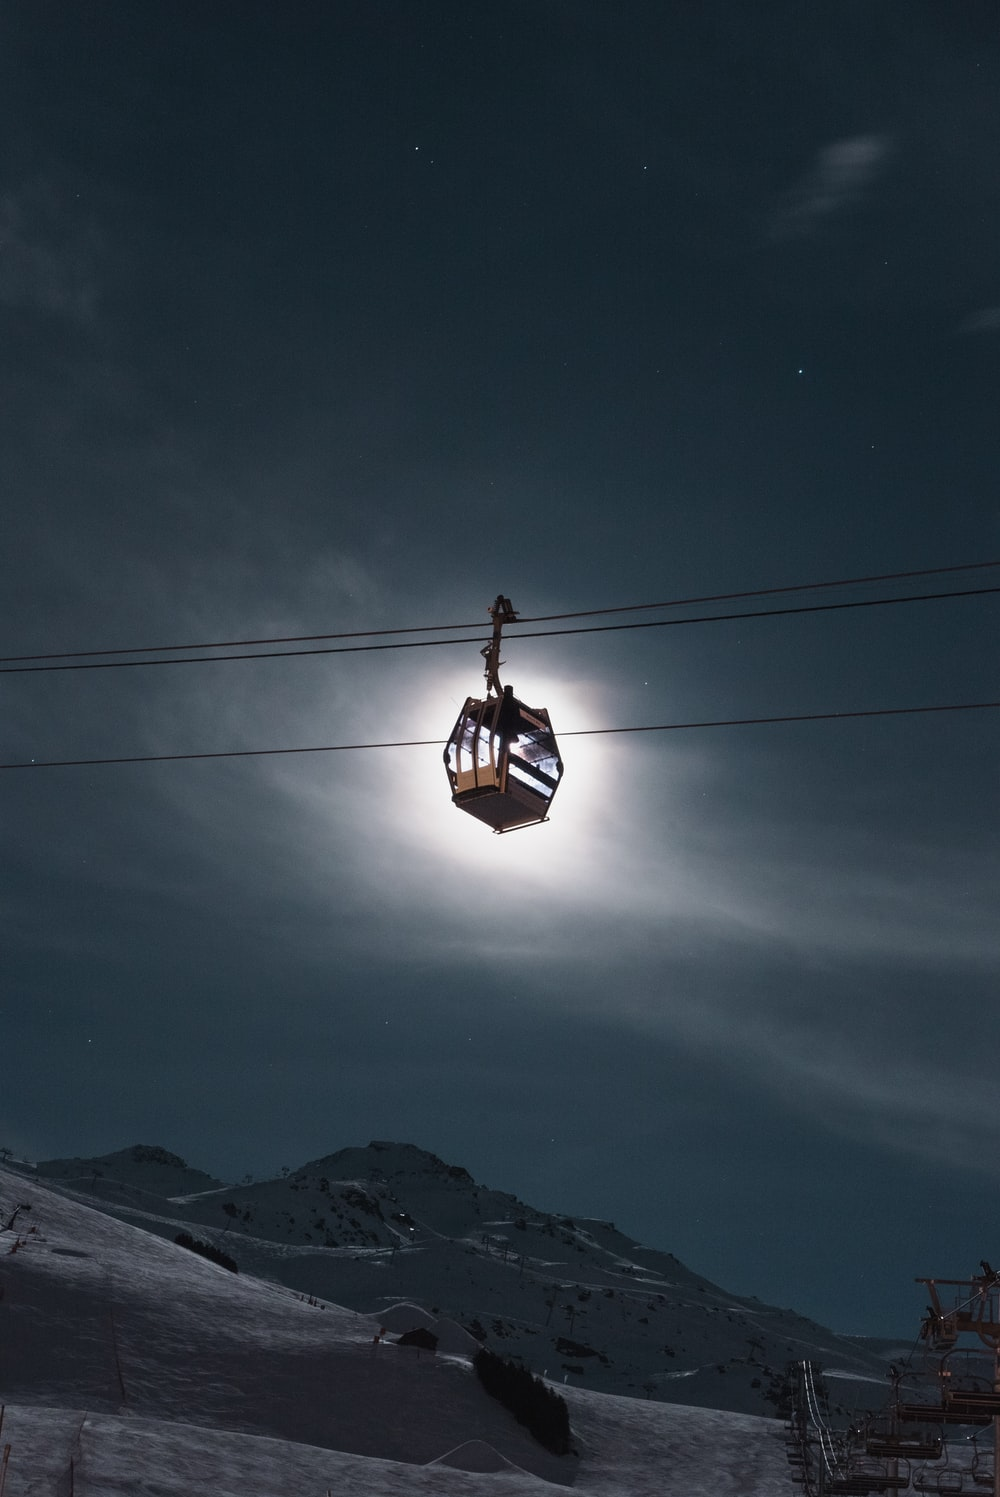 cable ride at night